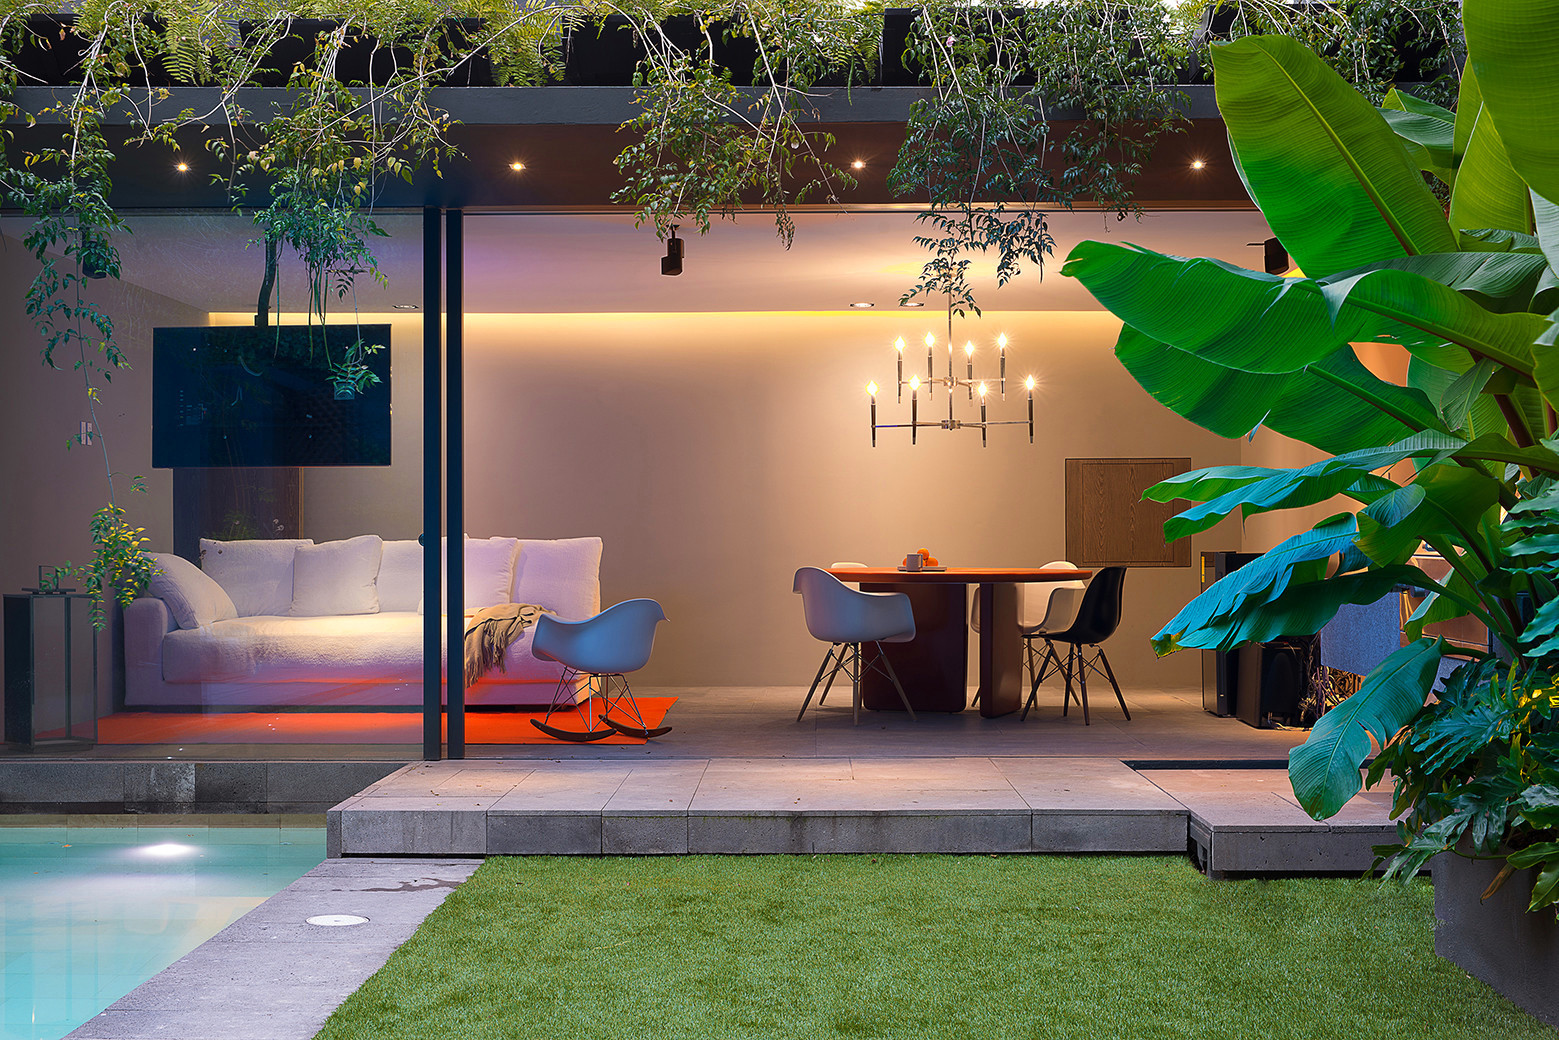 Green-house-mexico-just3ds.com-2